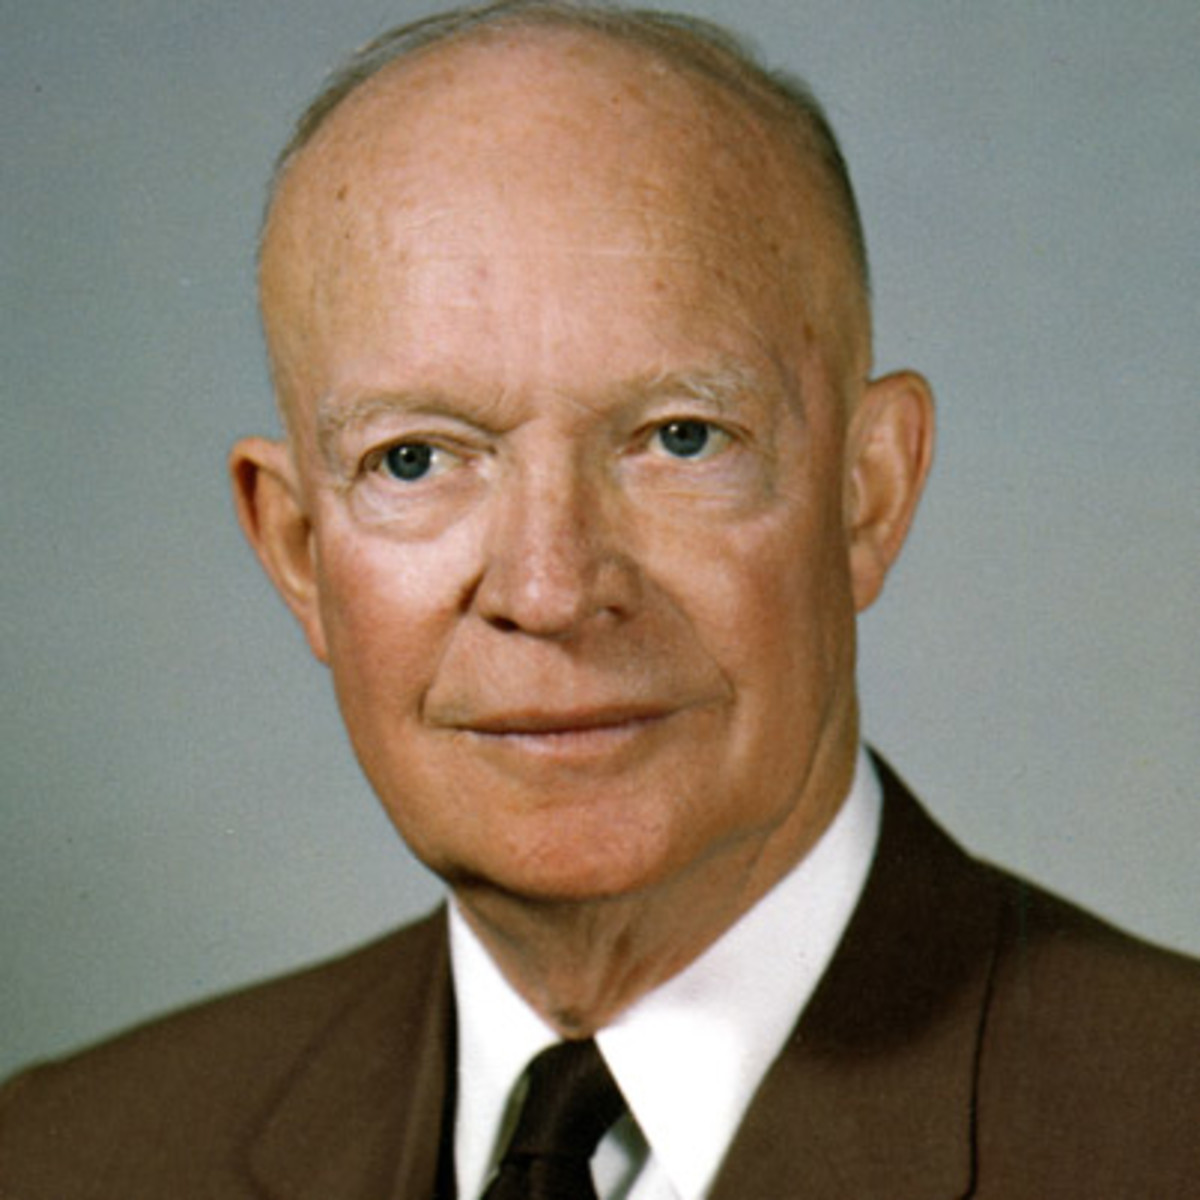 Famous People That Start With D intended for dwight d. eisenhower - u.s. president, general, journalist - biography